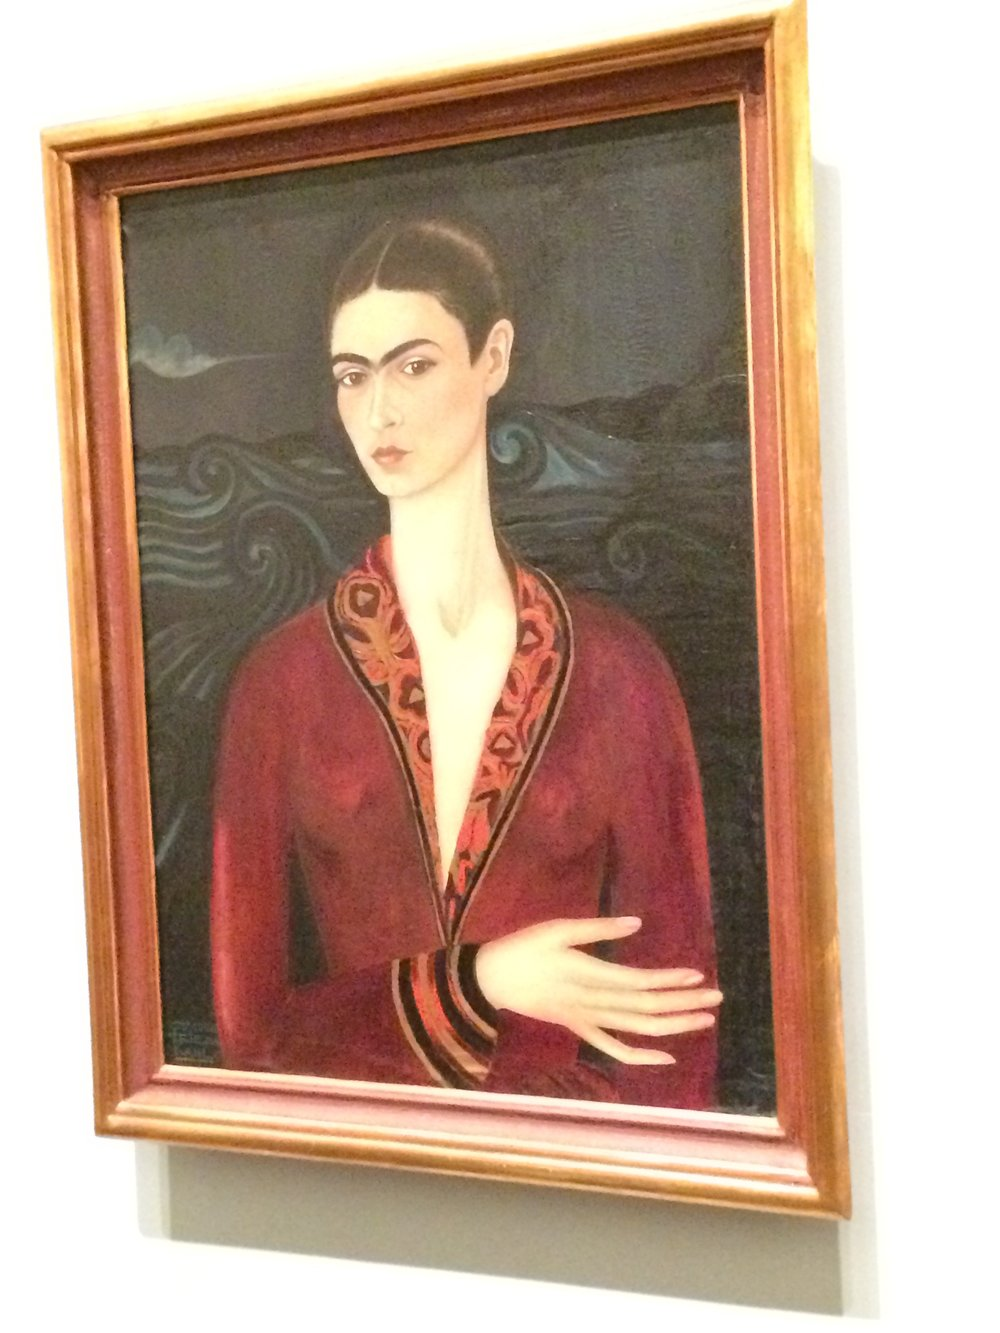 Frida Kahlo's first self portrait which no doubt put her on the map in the art scene.  The details are just phenomenal.